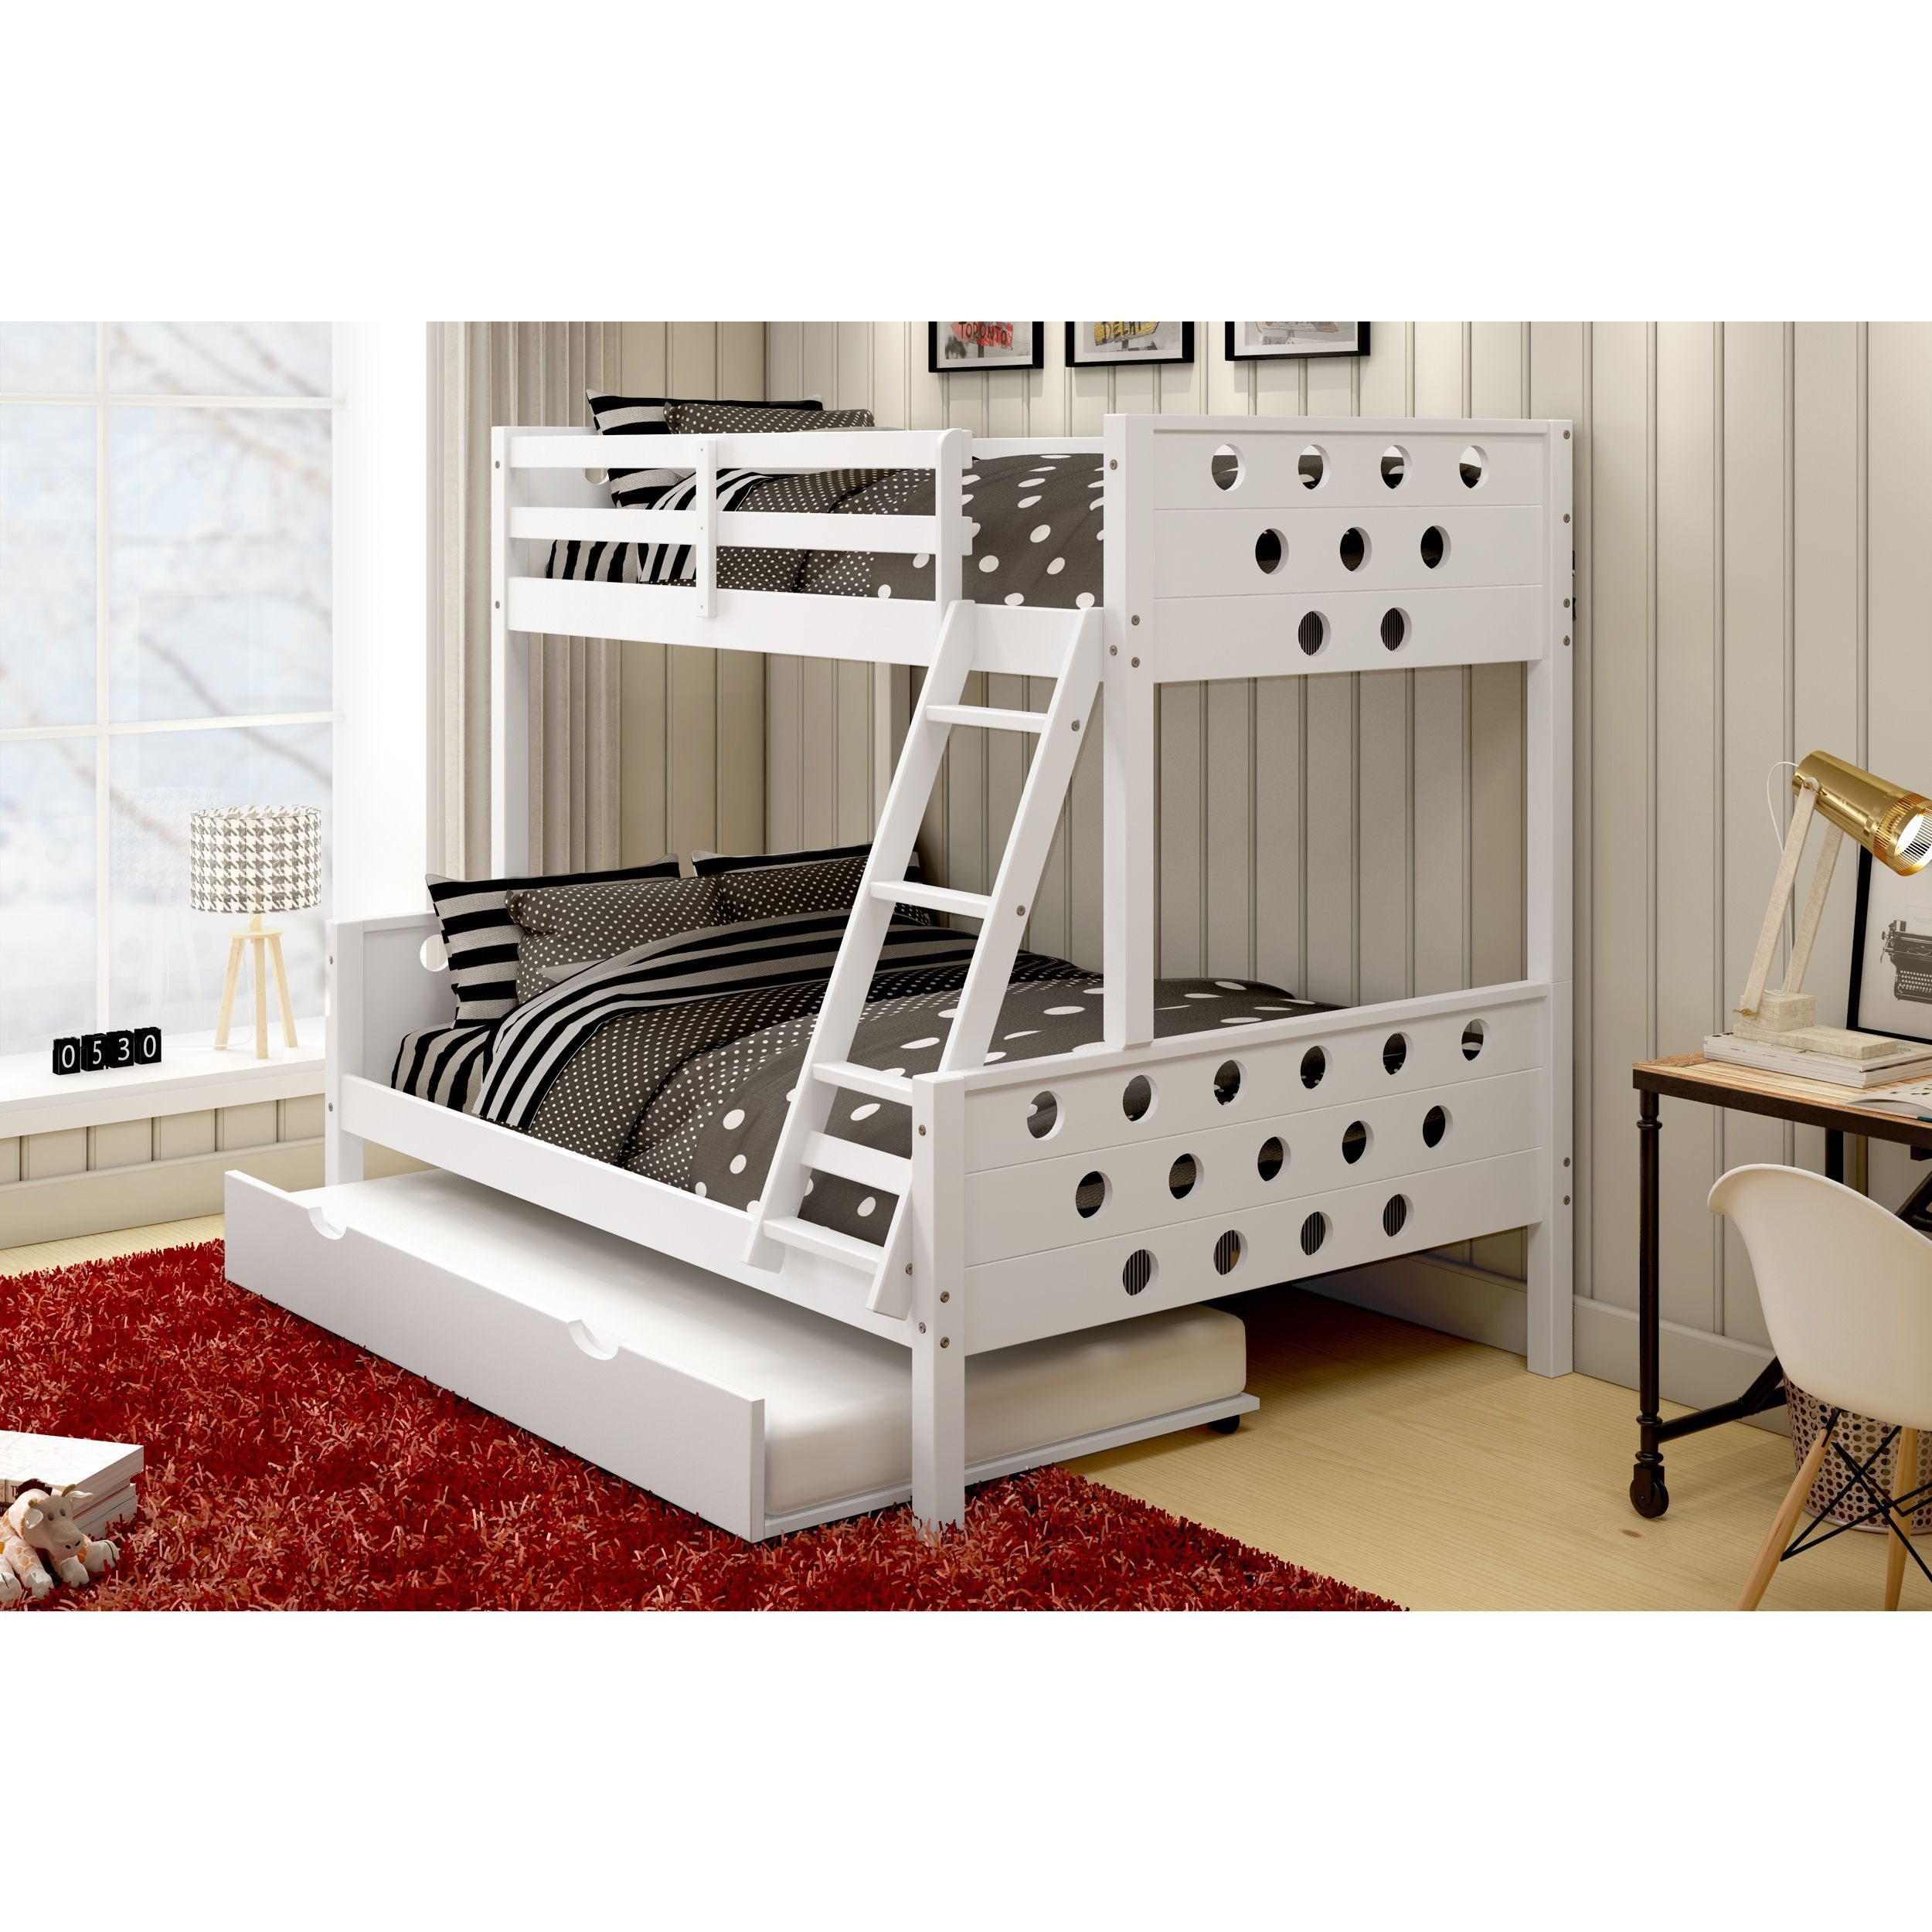 The Donco Kids Circles Bunk Bed Efficiently Saves Space In Any